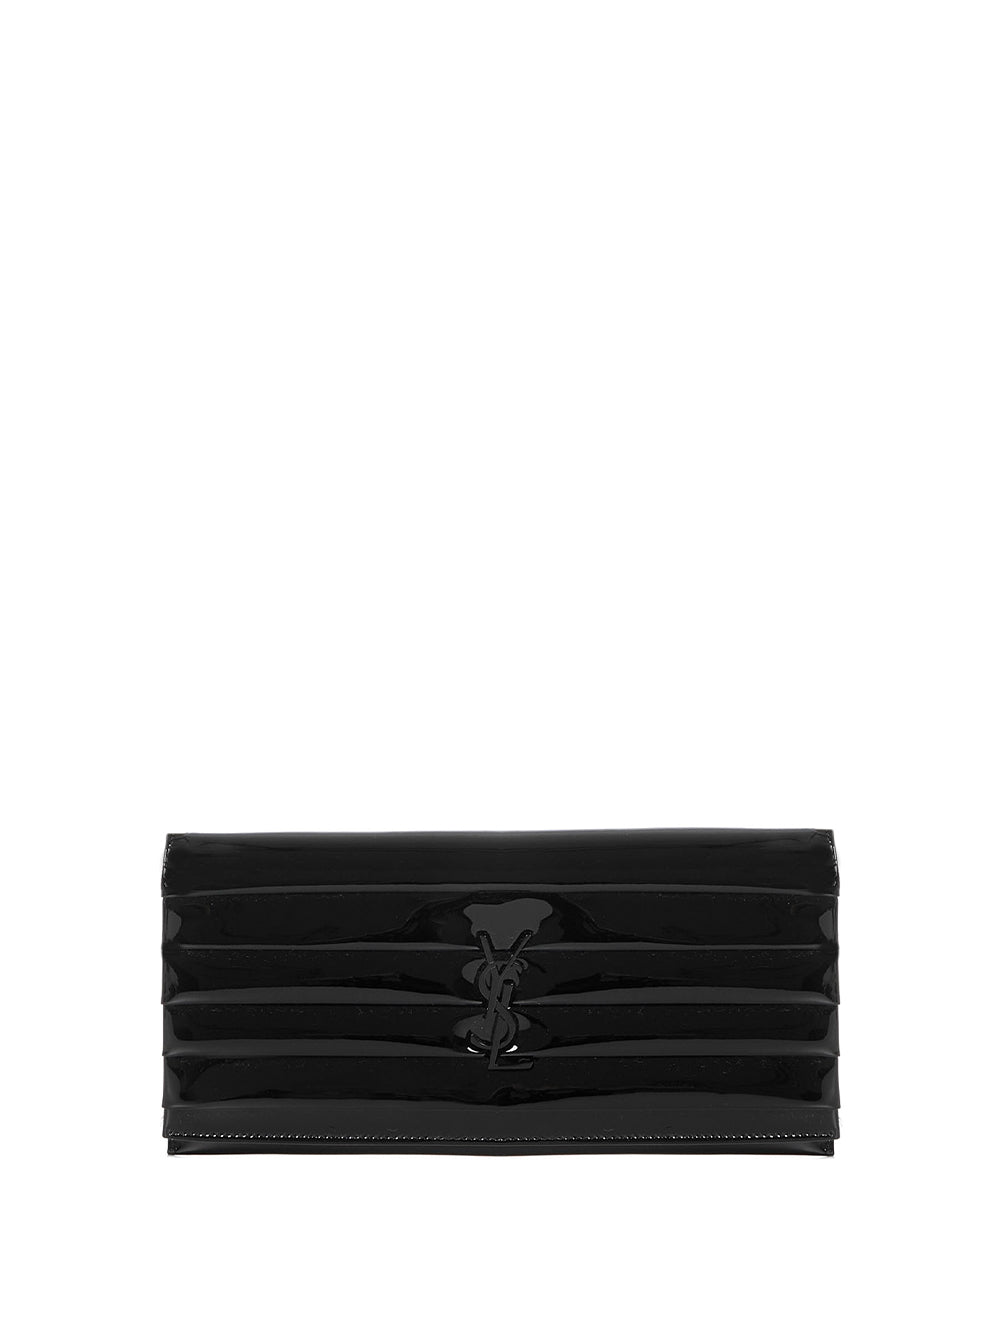 Smoking Clutch in Black Patent Leather